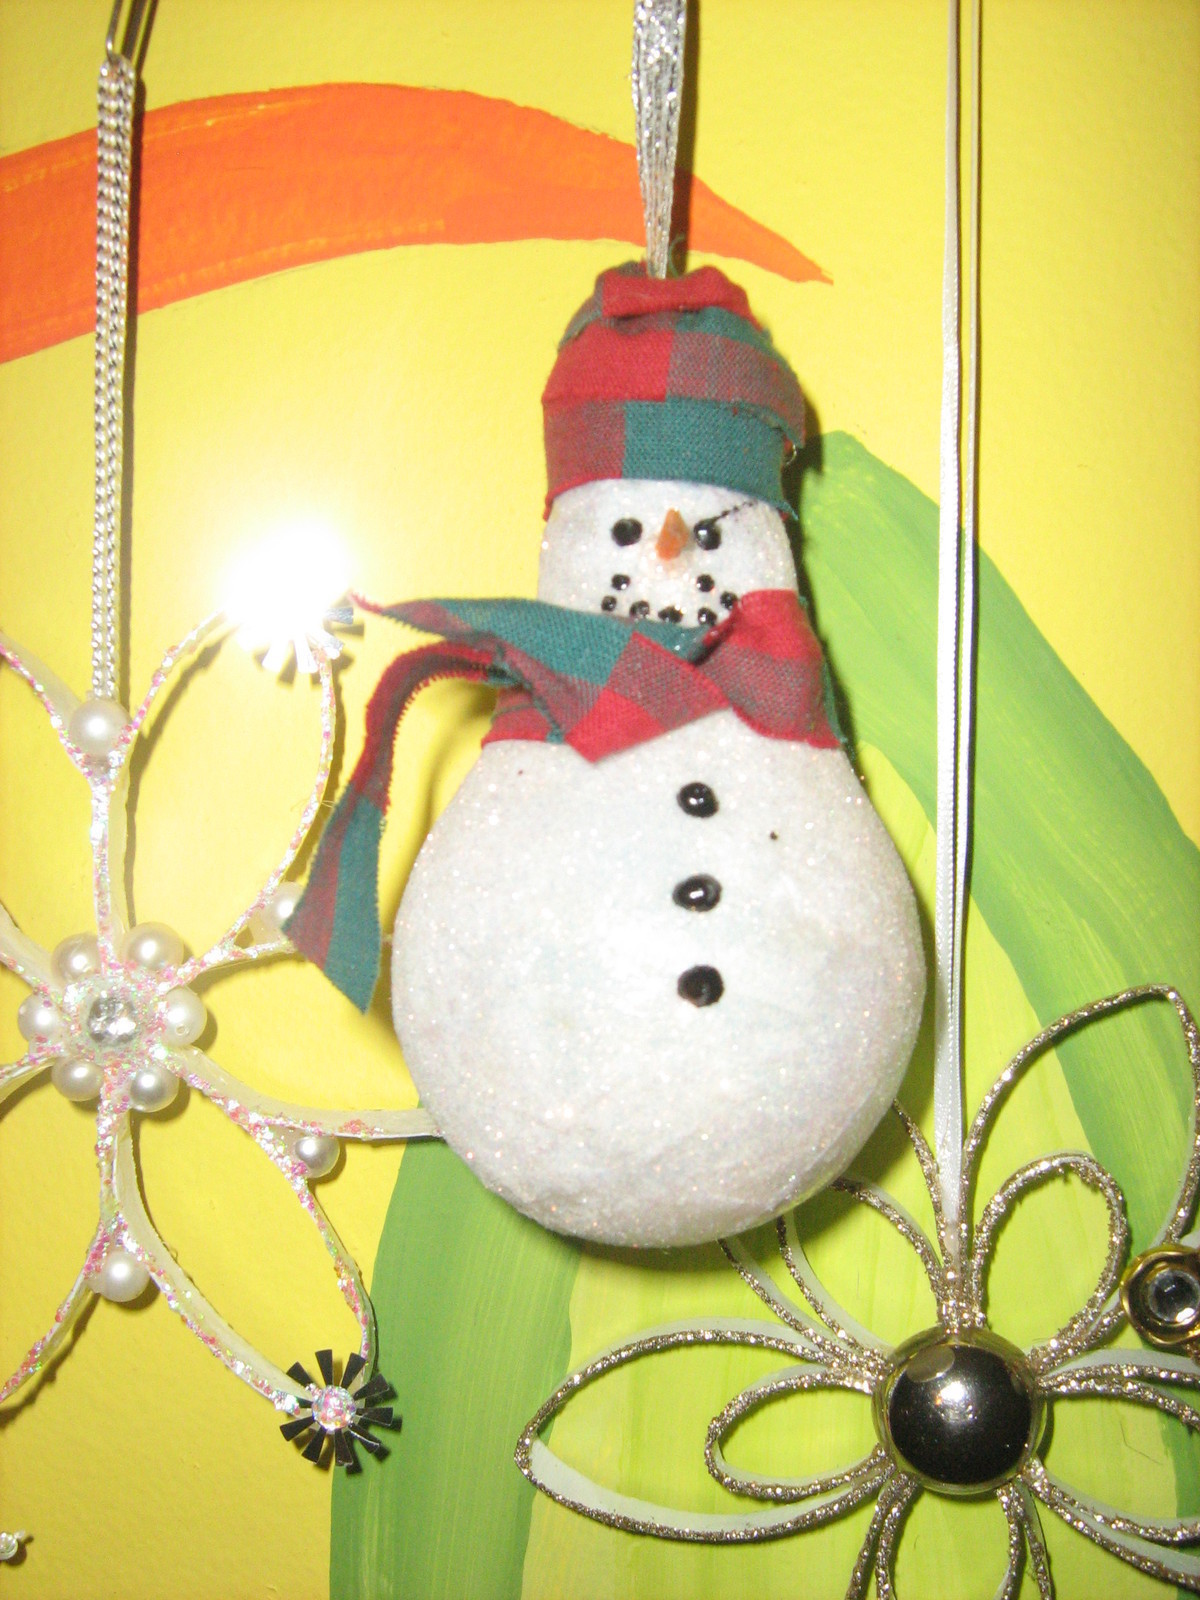 Snowman From Used Light Bulbs 183 A Snowman Ornament 183 Art Decorating And Embellishing On Cut